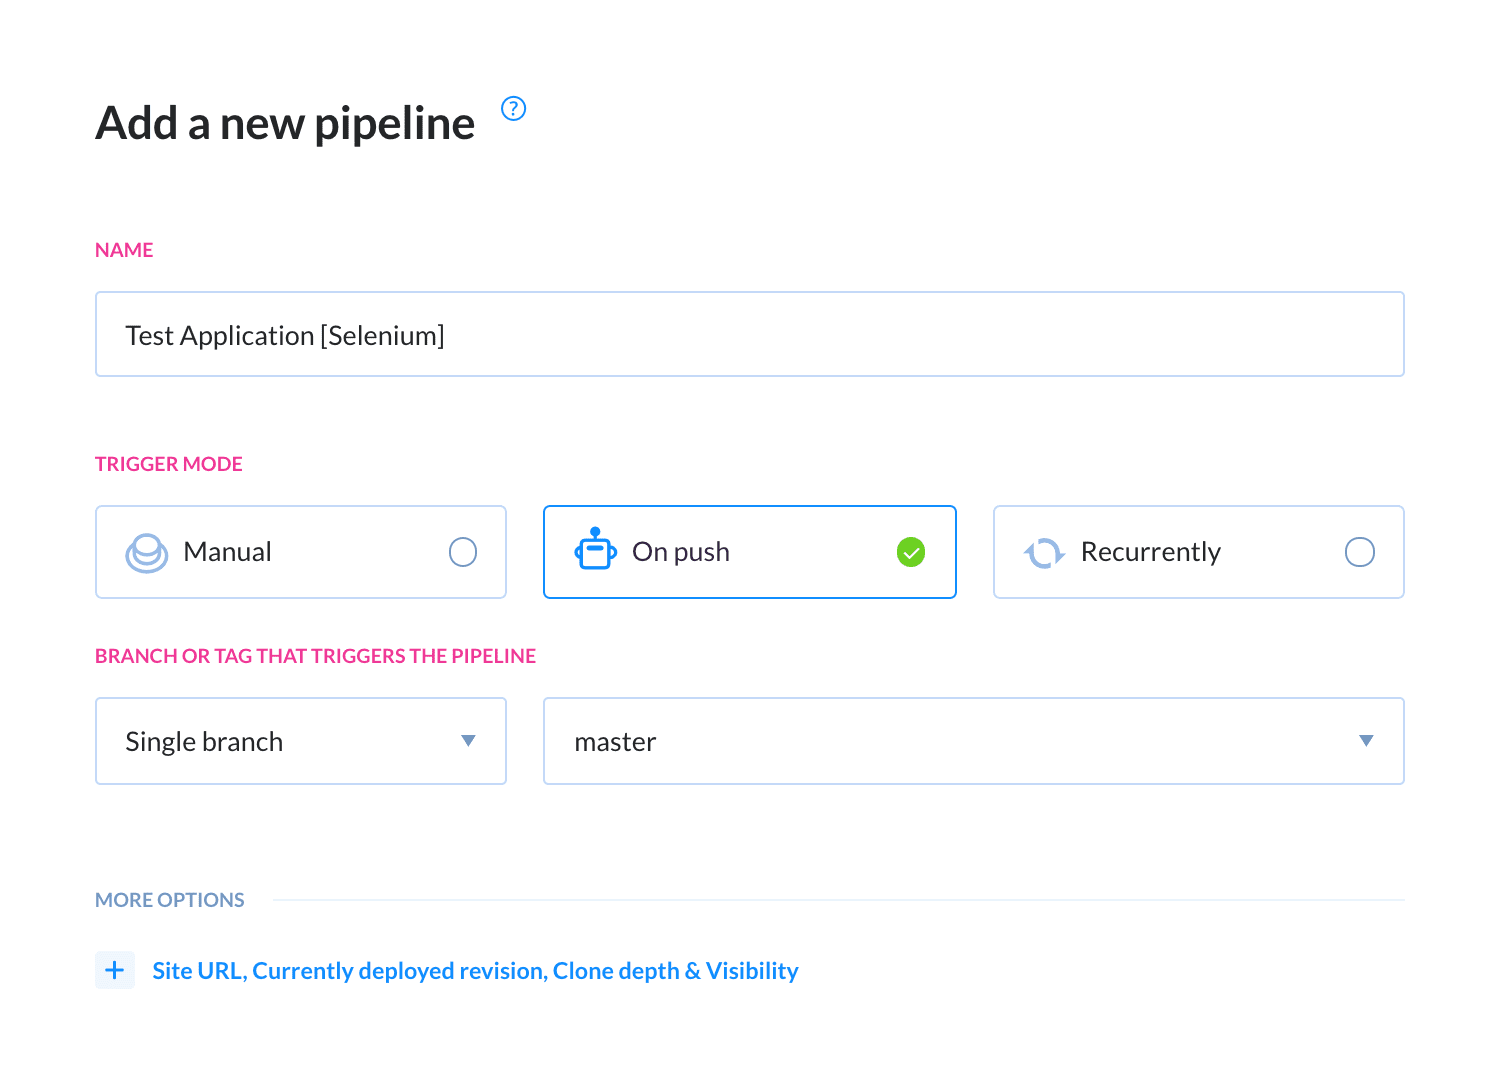 Add a new pipeline